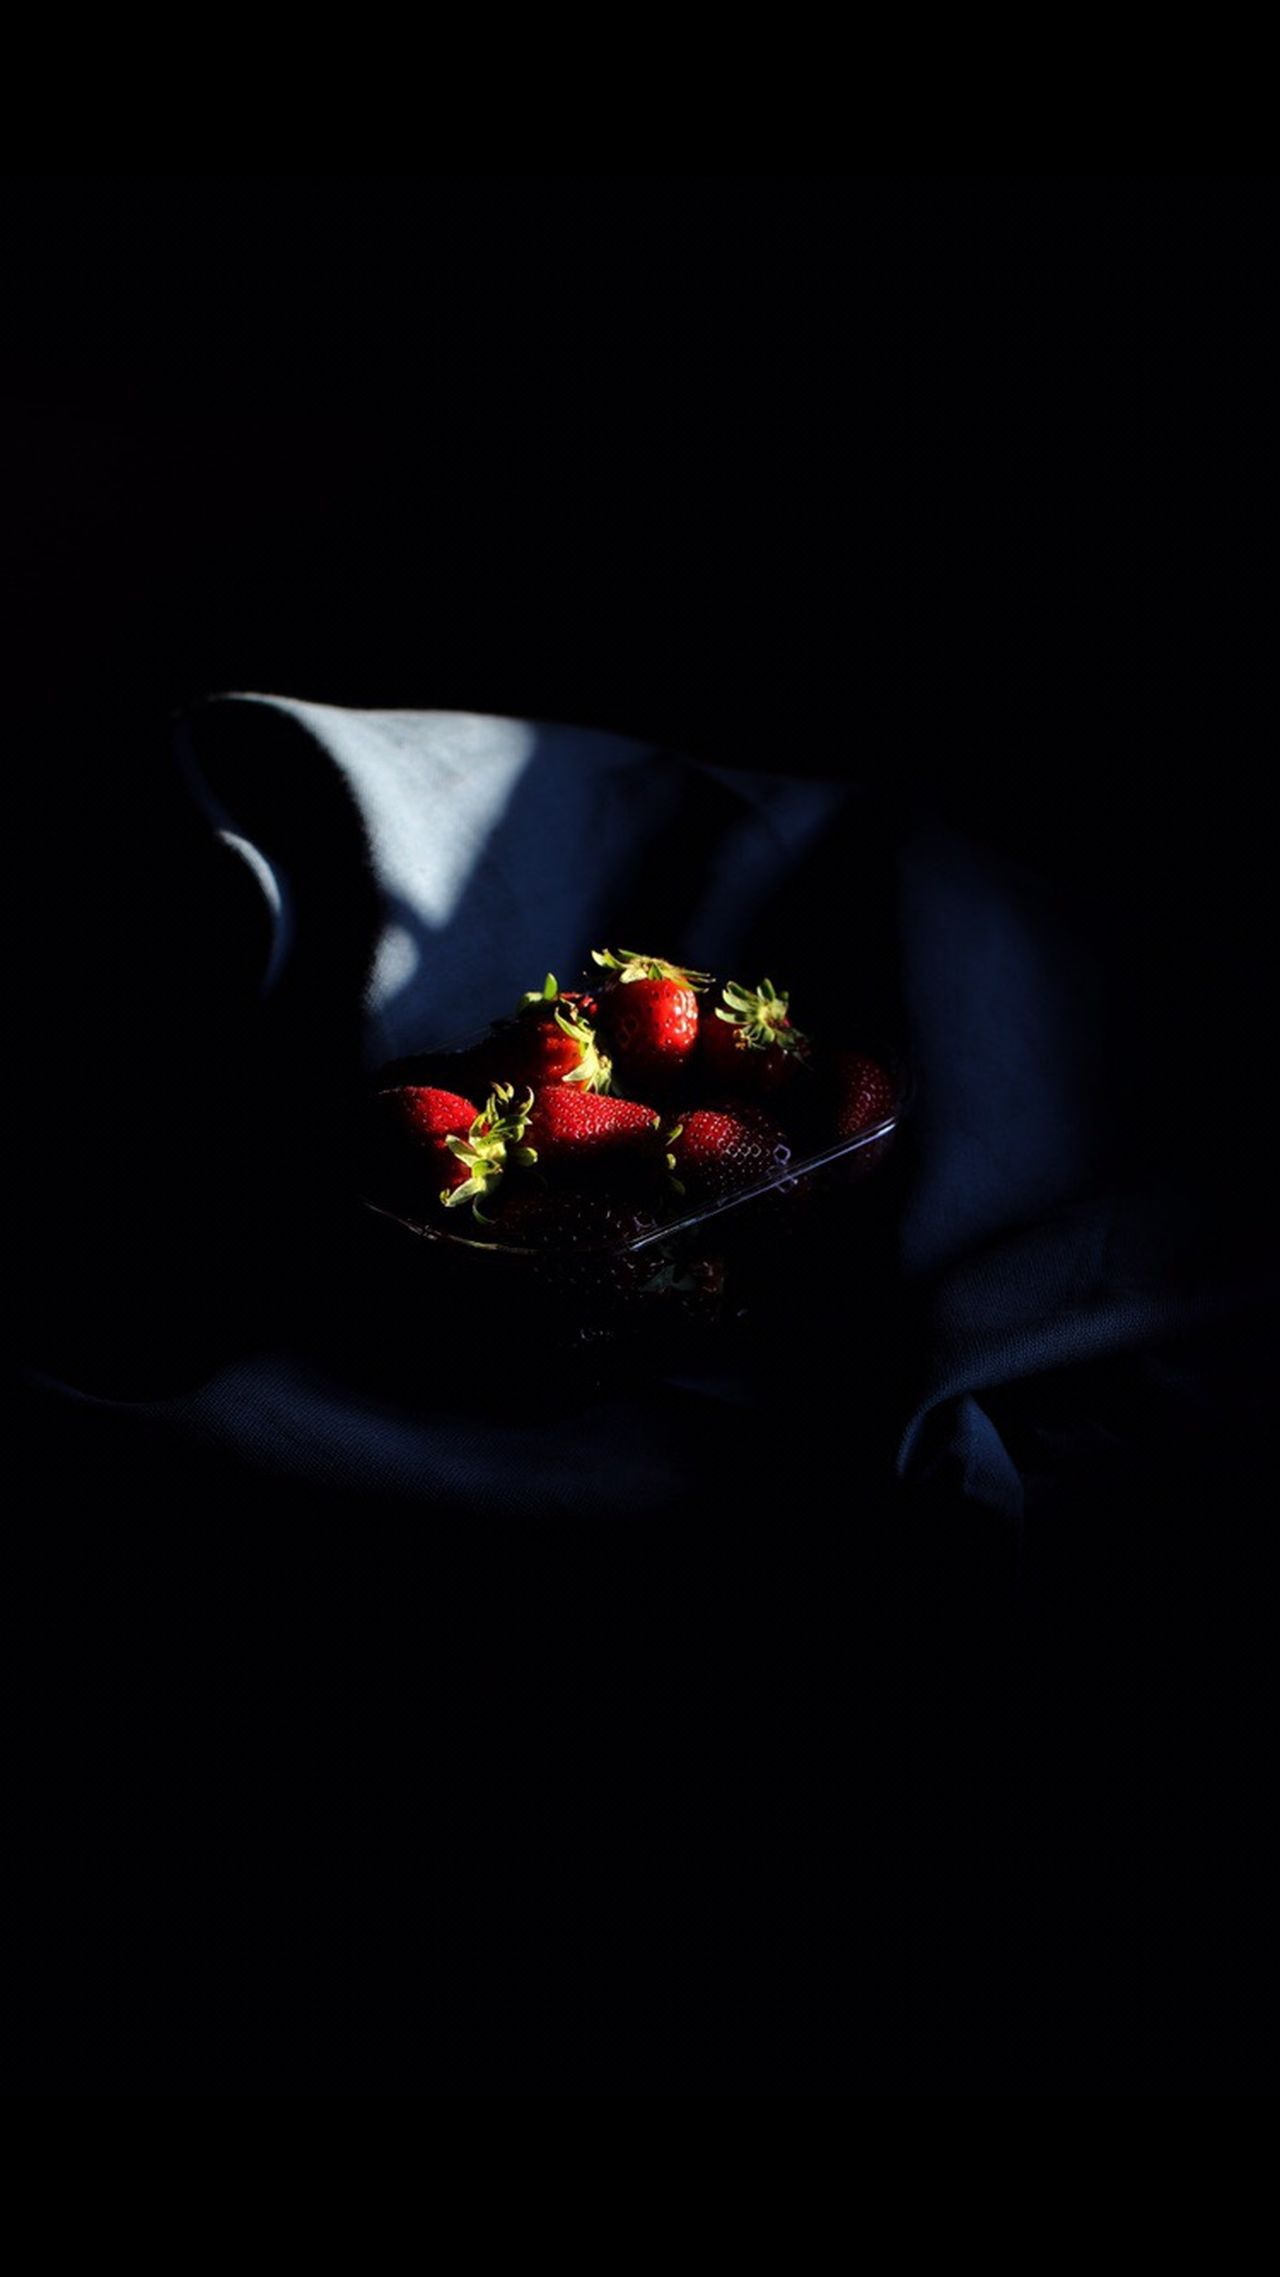 Strawberry Food And Drink Food Fruit Sweet Food Black Background Freshness Indulgence Indoors  No People Dessert Plate Red Healthy Eating Temptation Ready-to-eat Close-up Day Freshness Fresh On Eyeem